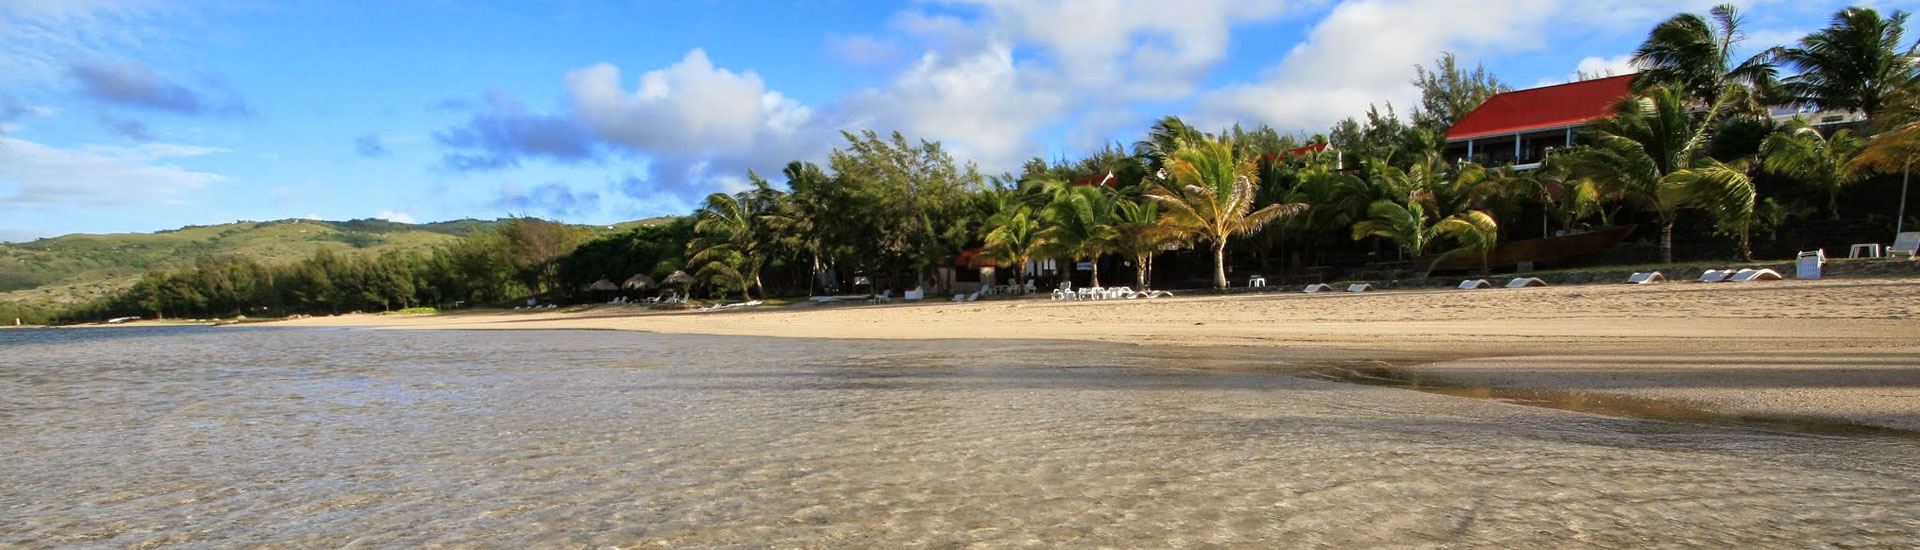 mourouk-ebony-hotel-rodrigues-view-from-lagoon